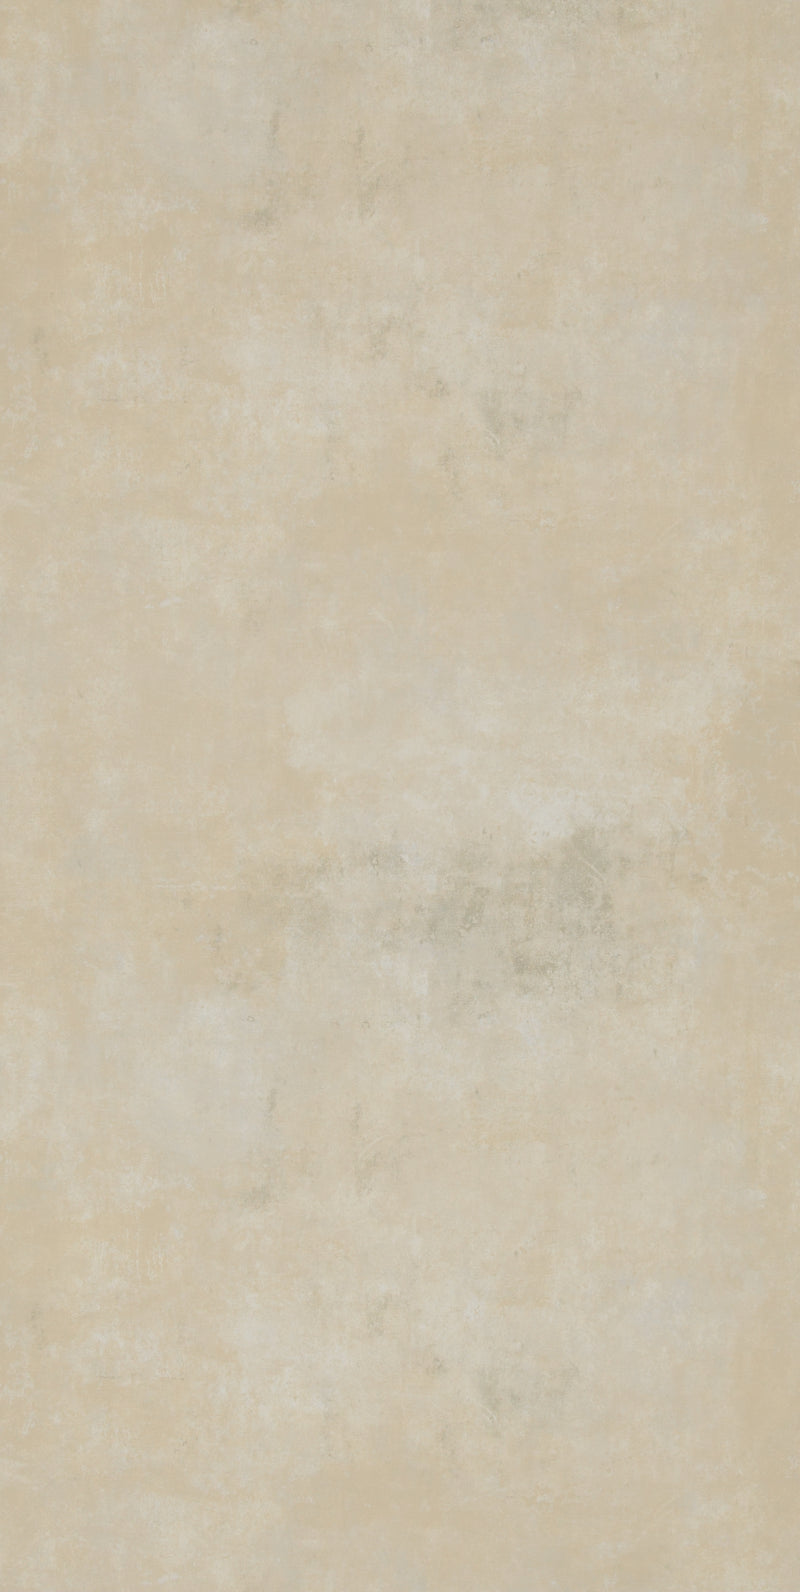 Beige Abstract Concrete Wallpaper R2610. Concrete wallpaper. abstract wallpaper.